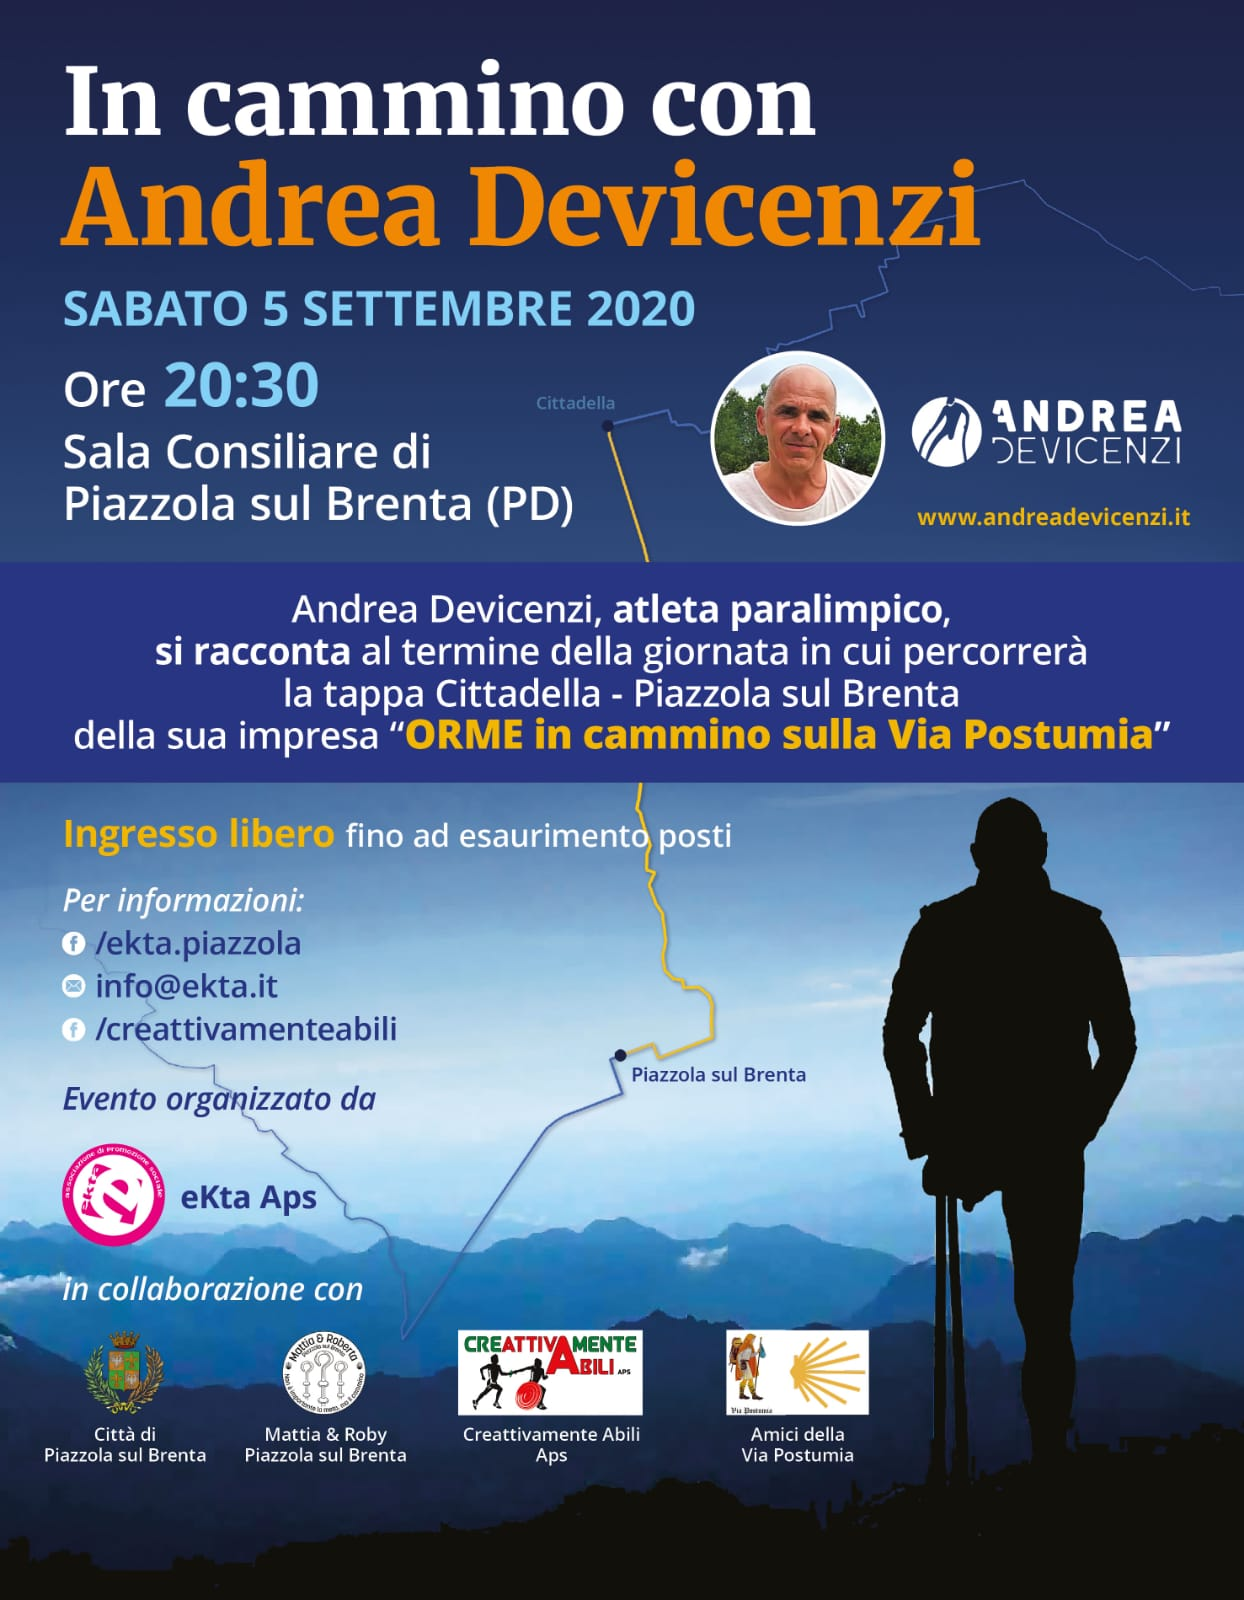 In Cammino con Andrea Devicenzi